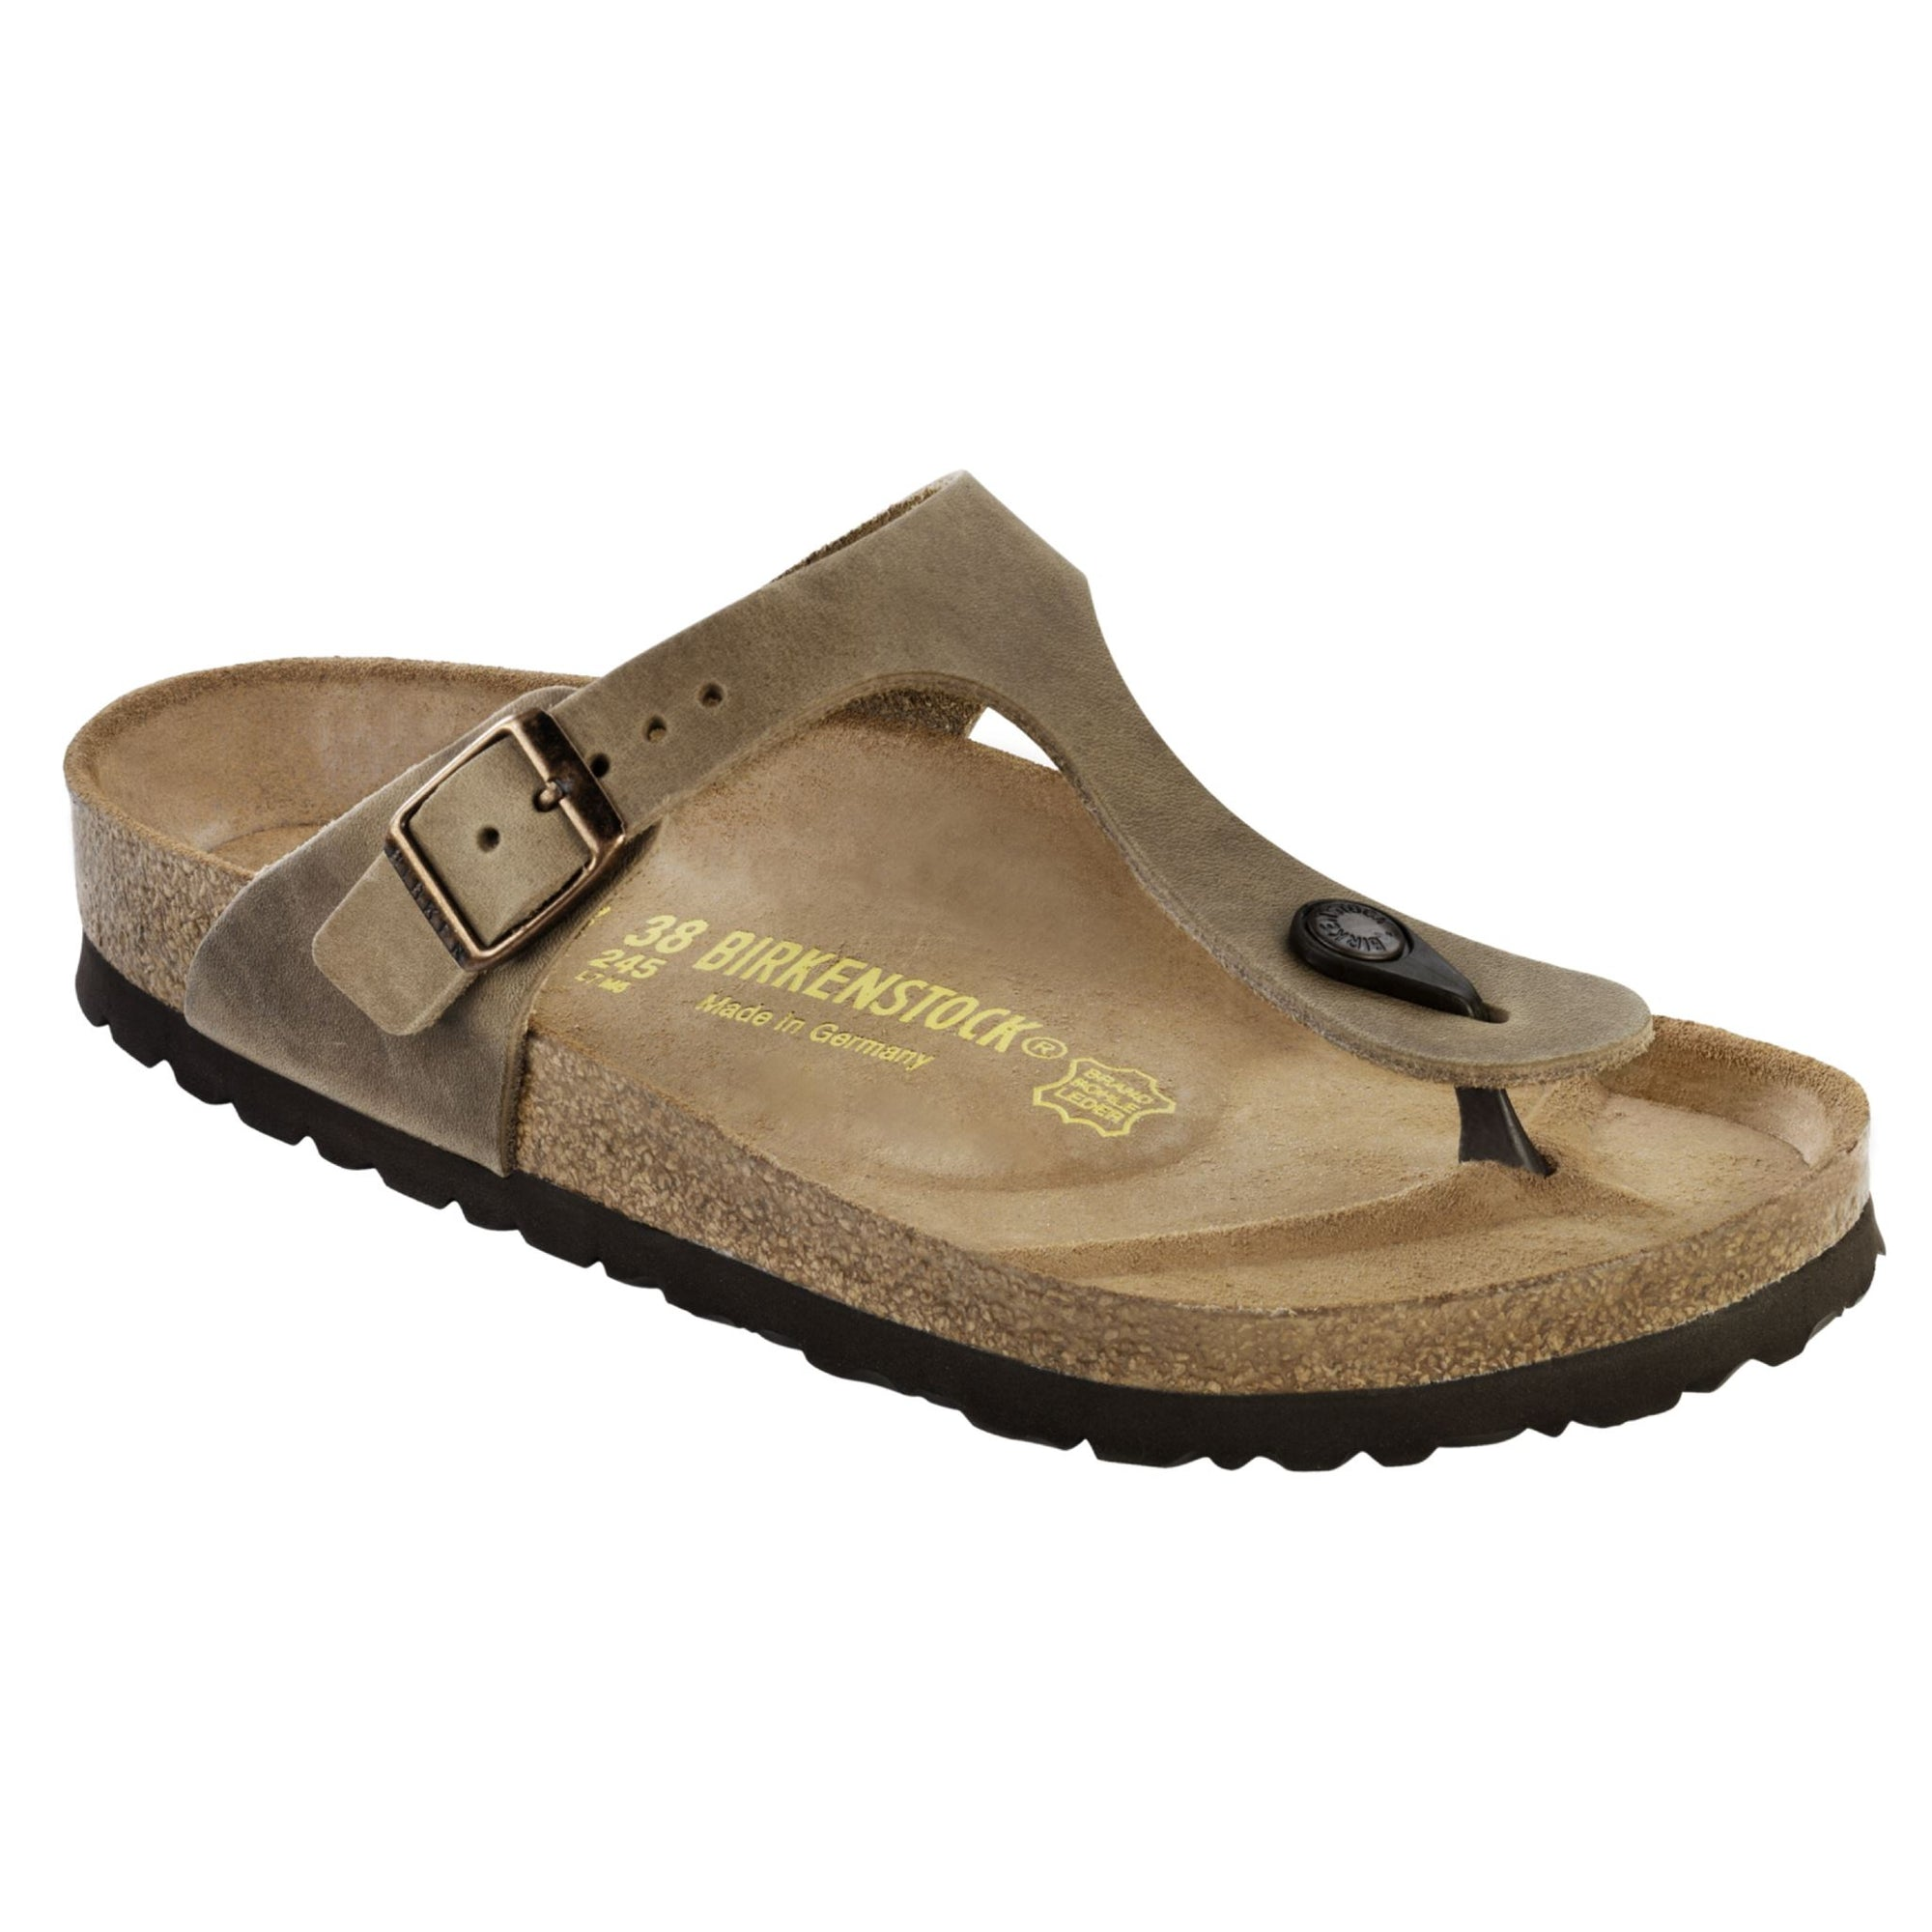 Birkenstock, Gizeh, Regular Fit, Natural Leather, Tabacco Brown Sandals Birkenstock Classic Tabacco Brown 44